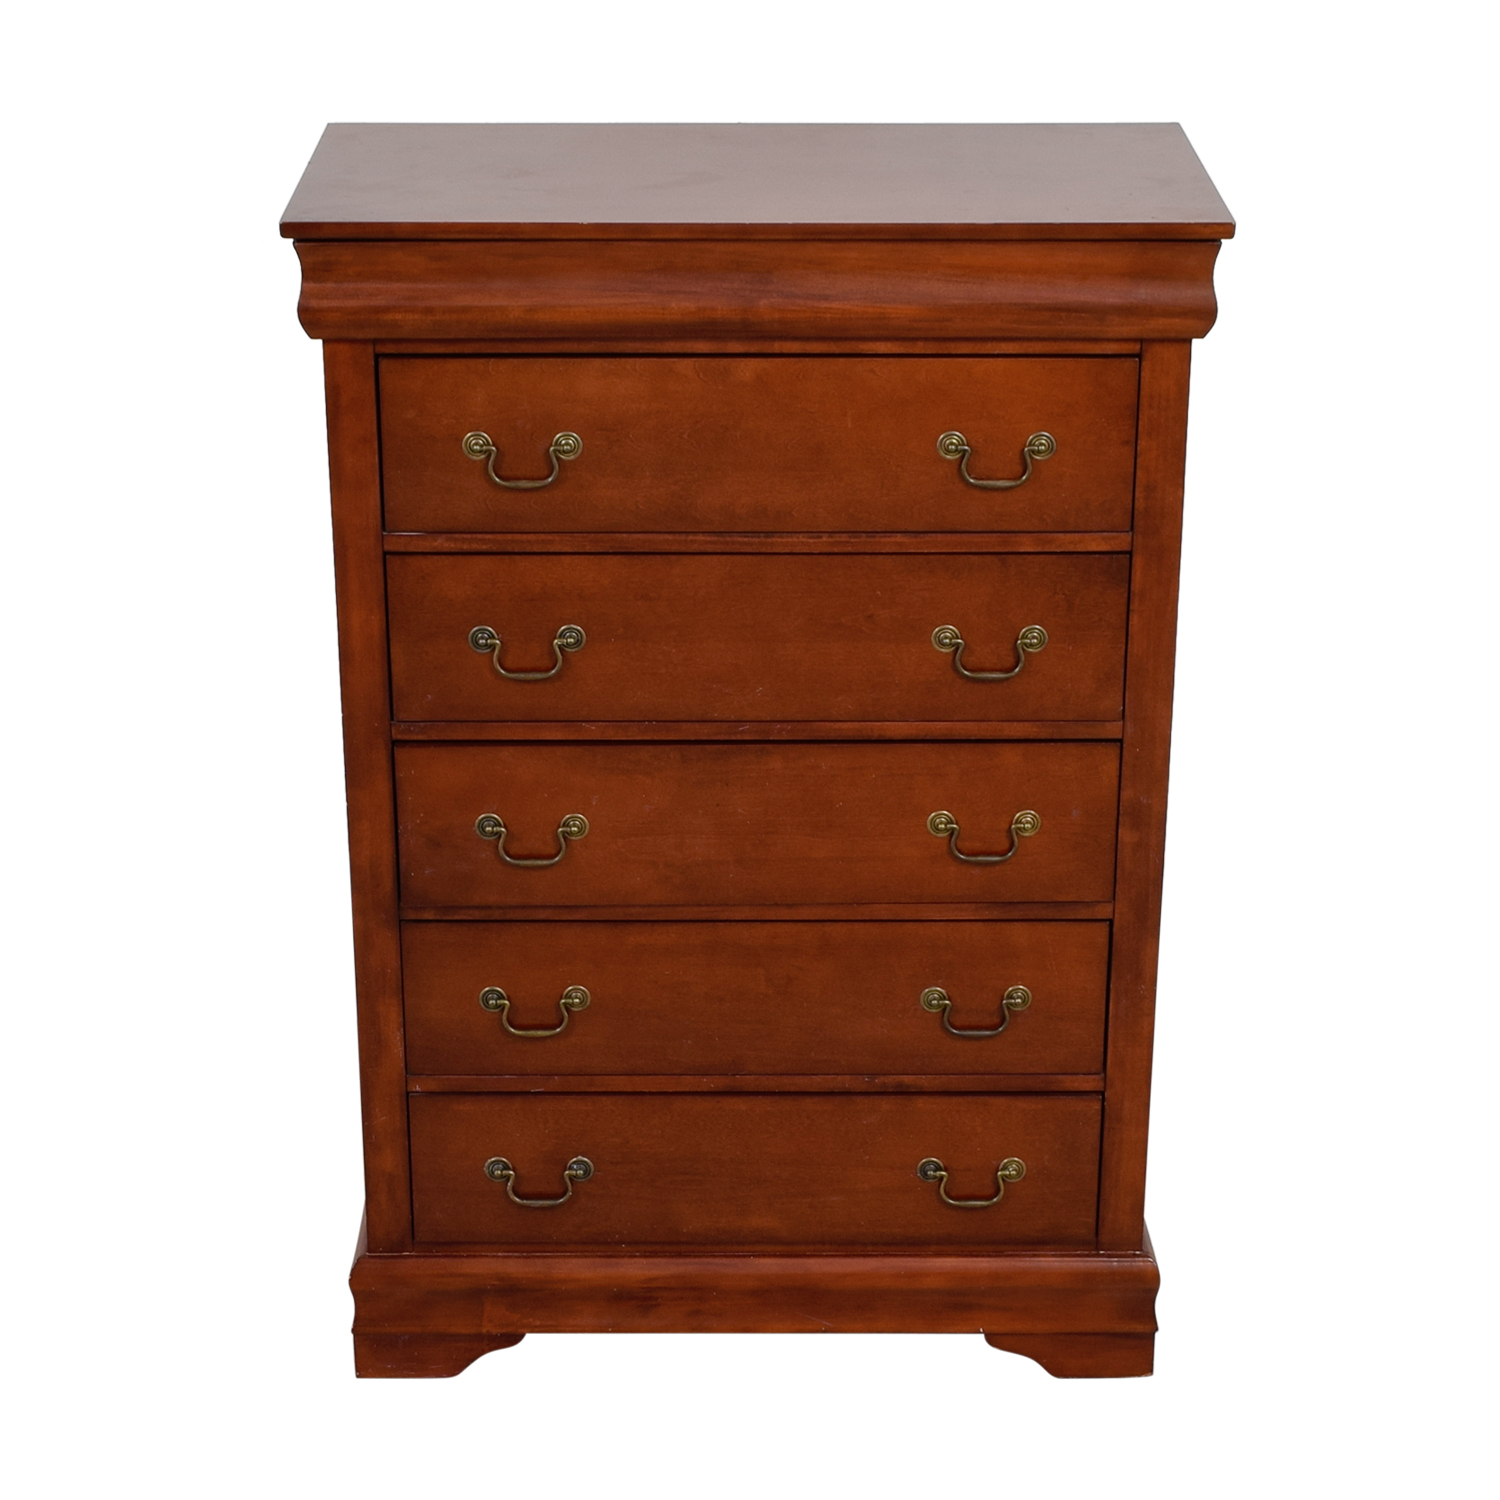 shop Raymour & Flanigan Wood Five-Drawer Dresser Raymour & Flanigan Dressers